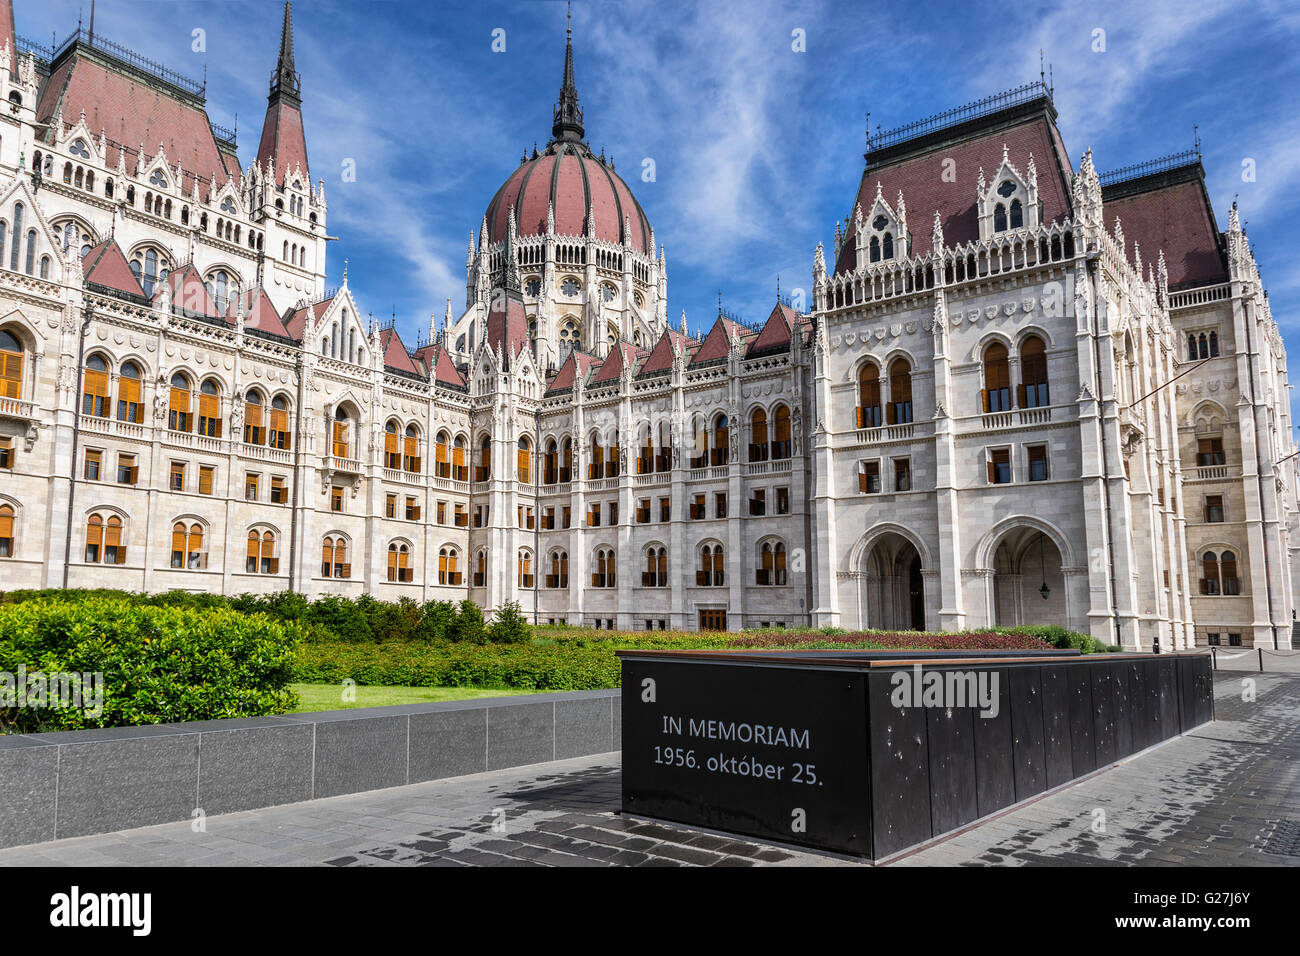 The Hungarian Parliament in Kossuth Sq Budapest - Stock Image